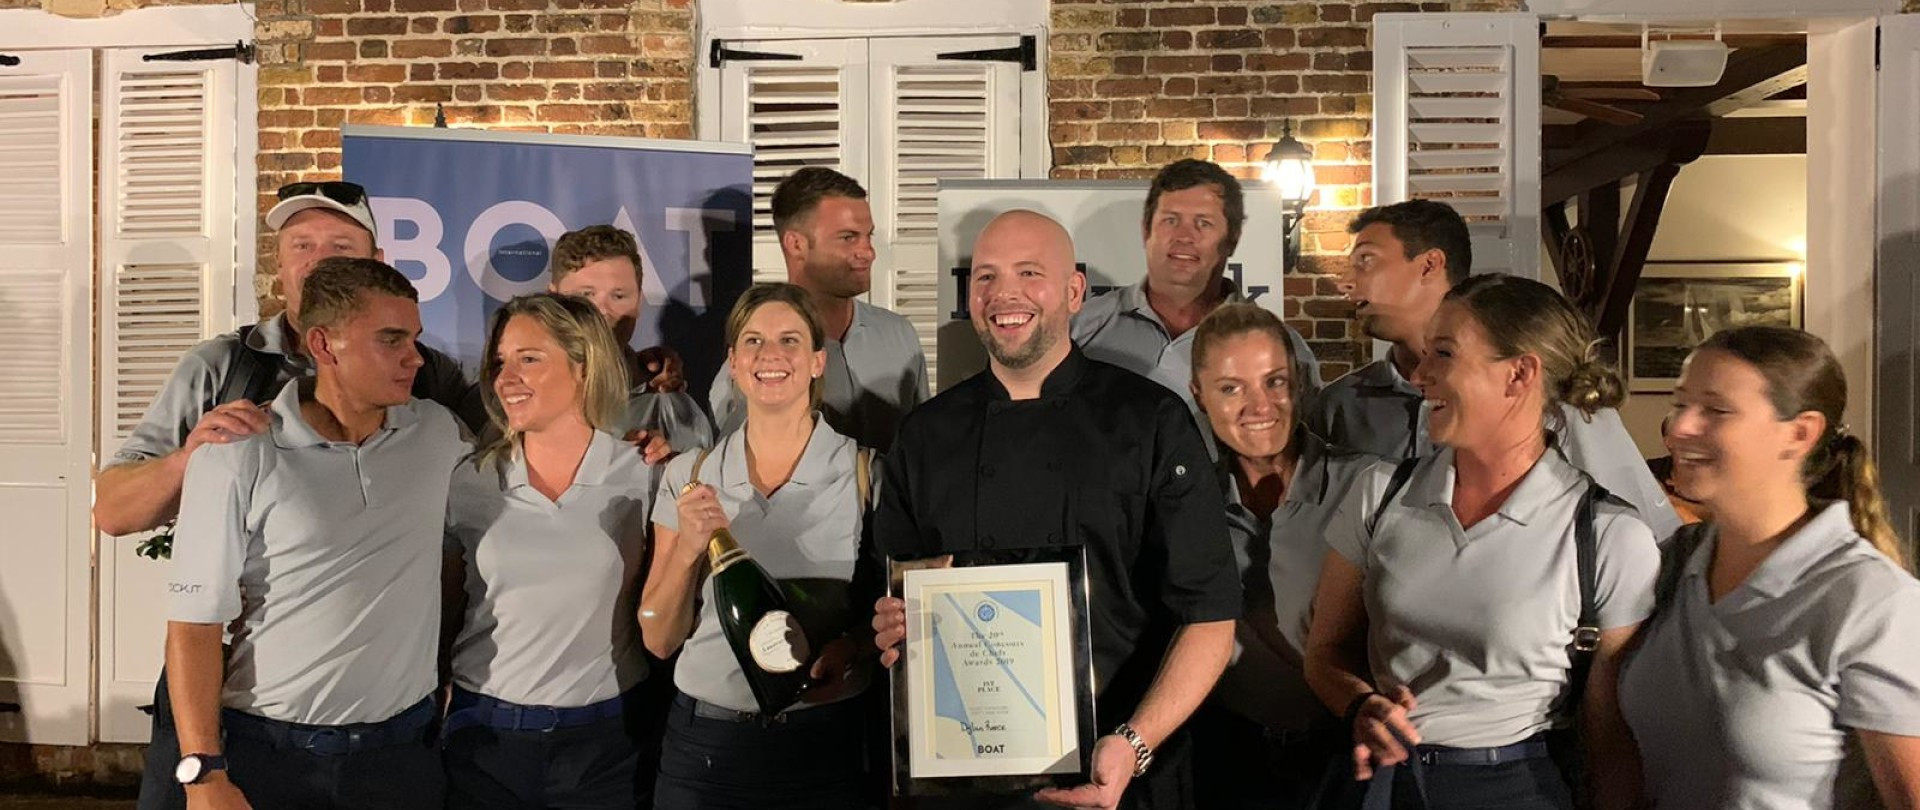 Rock.it, chef wins big at the Antigua Charter Yacht Show photo 1